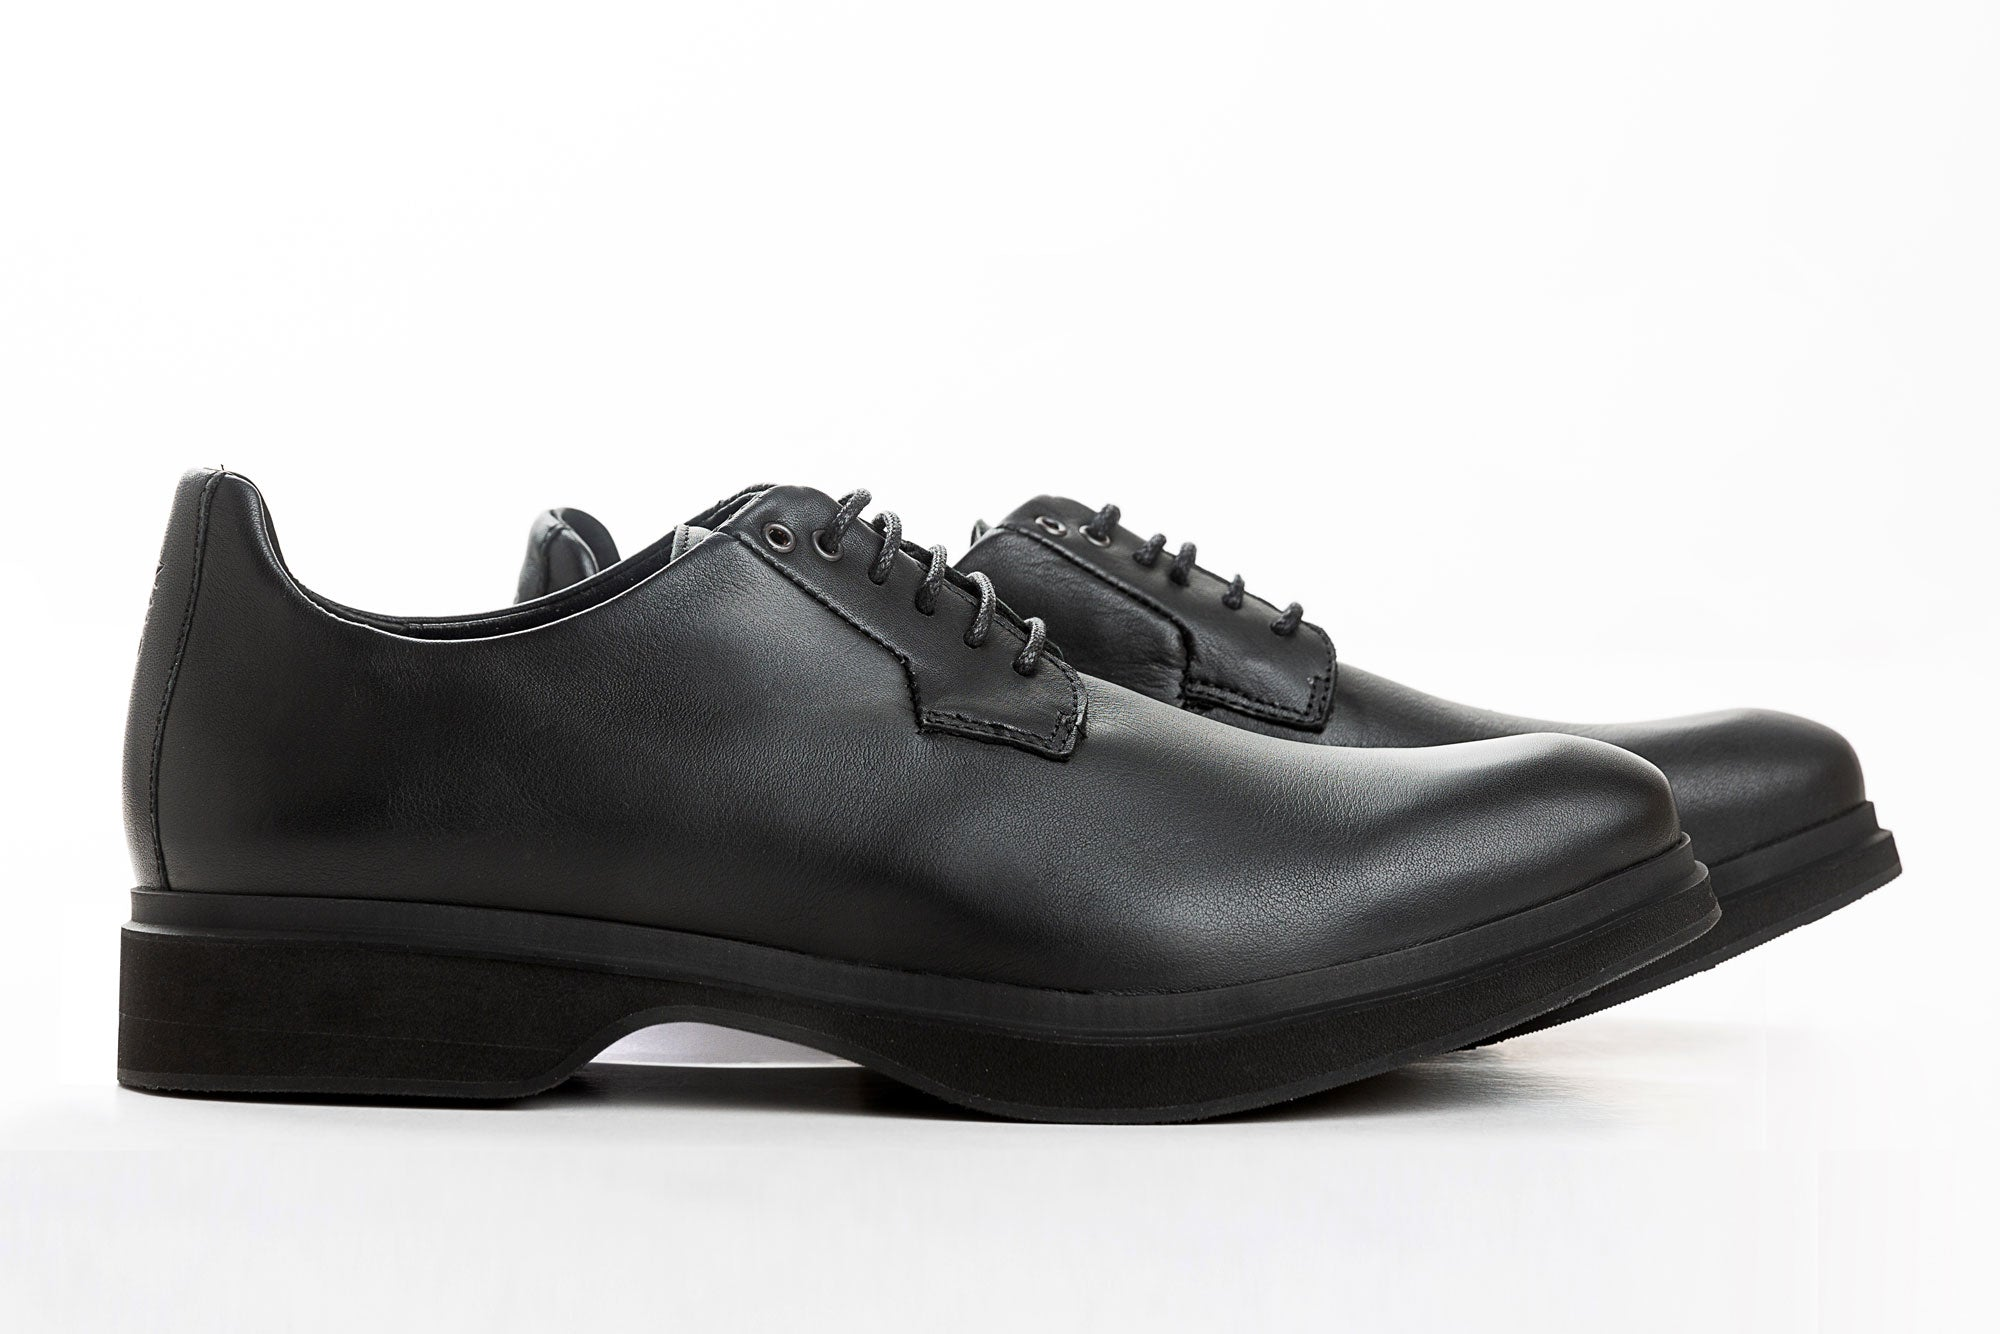 Most Comfortable Mens Dress Shoes For Work - MARATOWN - super cushioned sole - most comfortable shoes